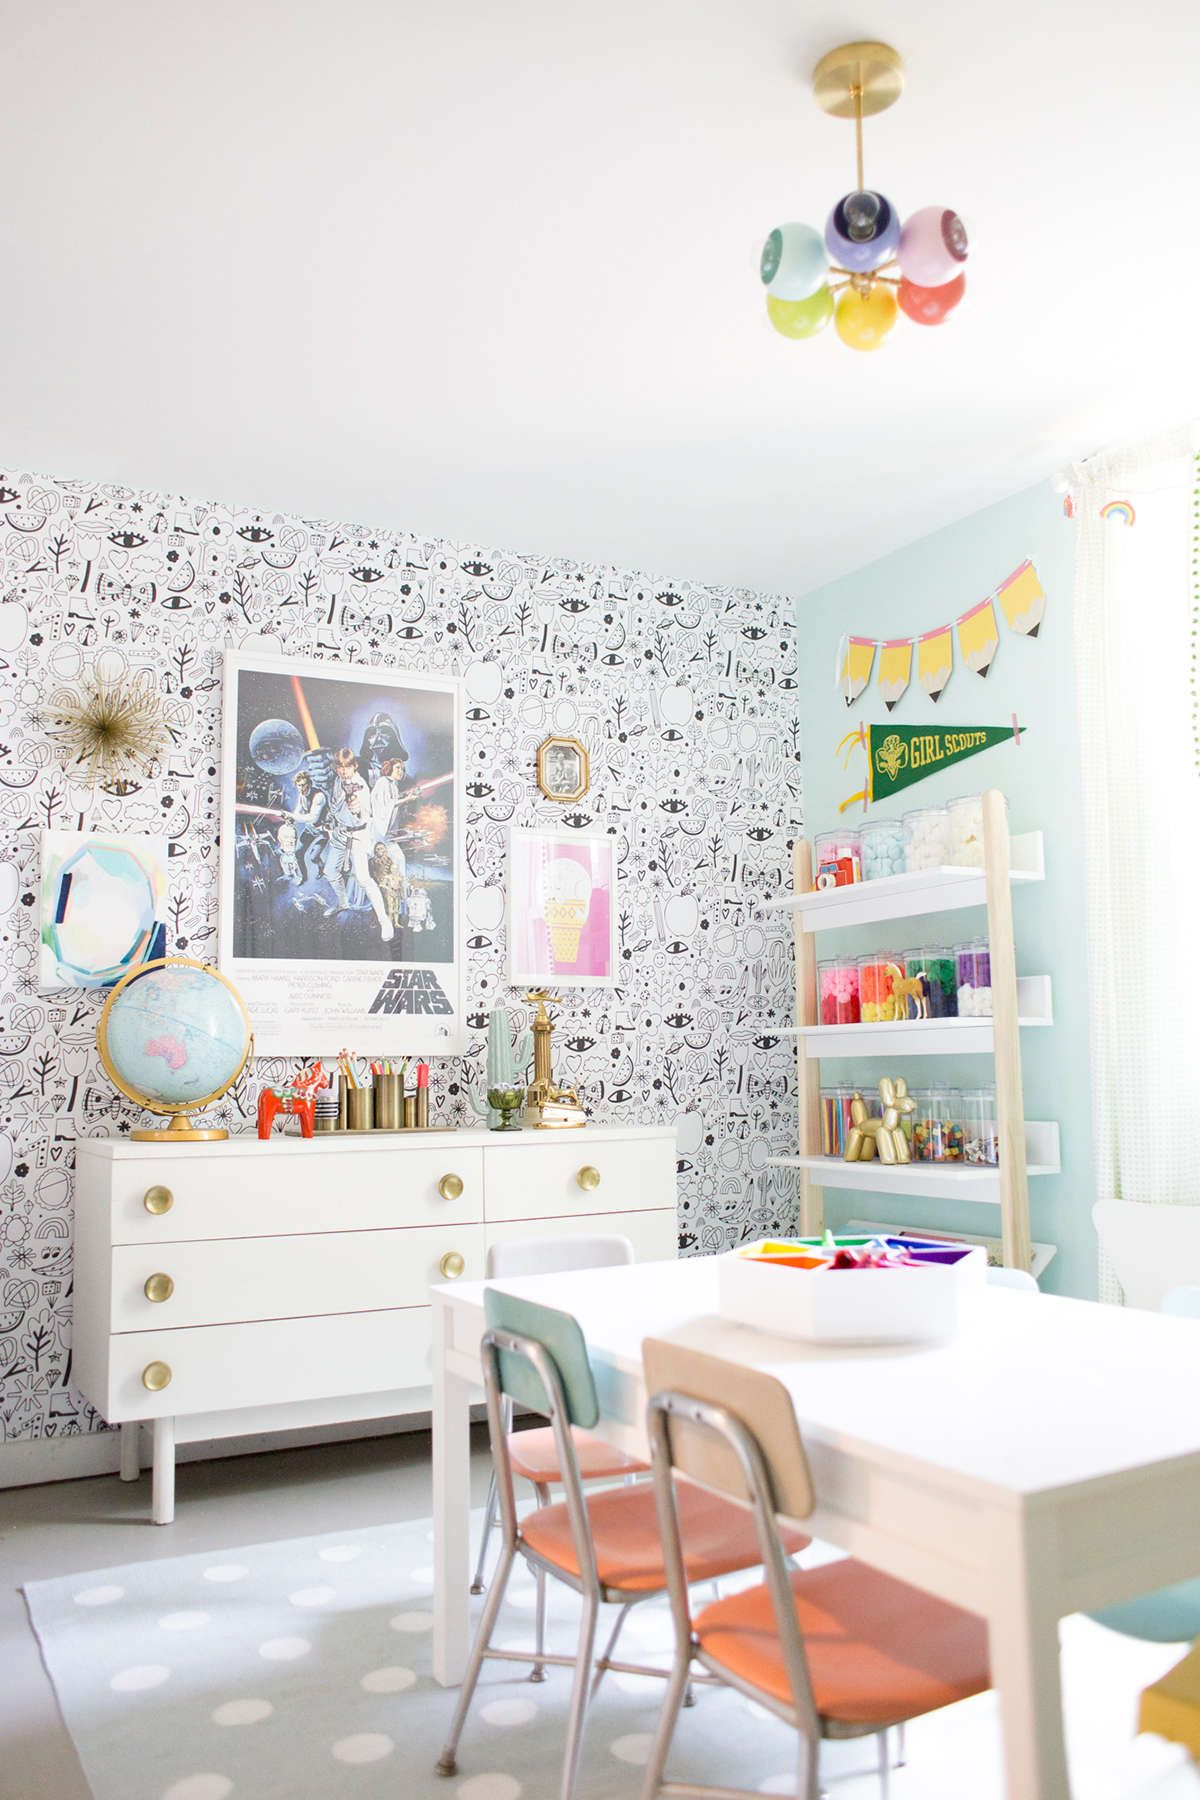 craft room ideas for kids | Home Design | Pinterest | Playroom, Room ...